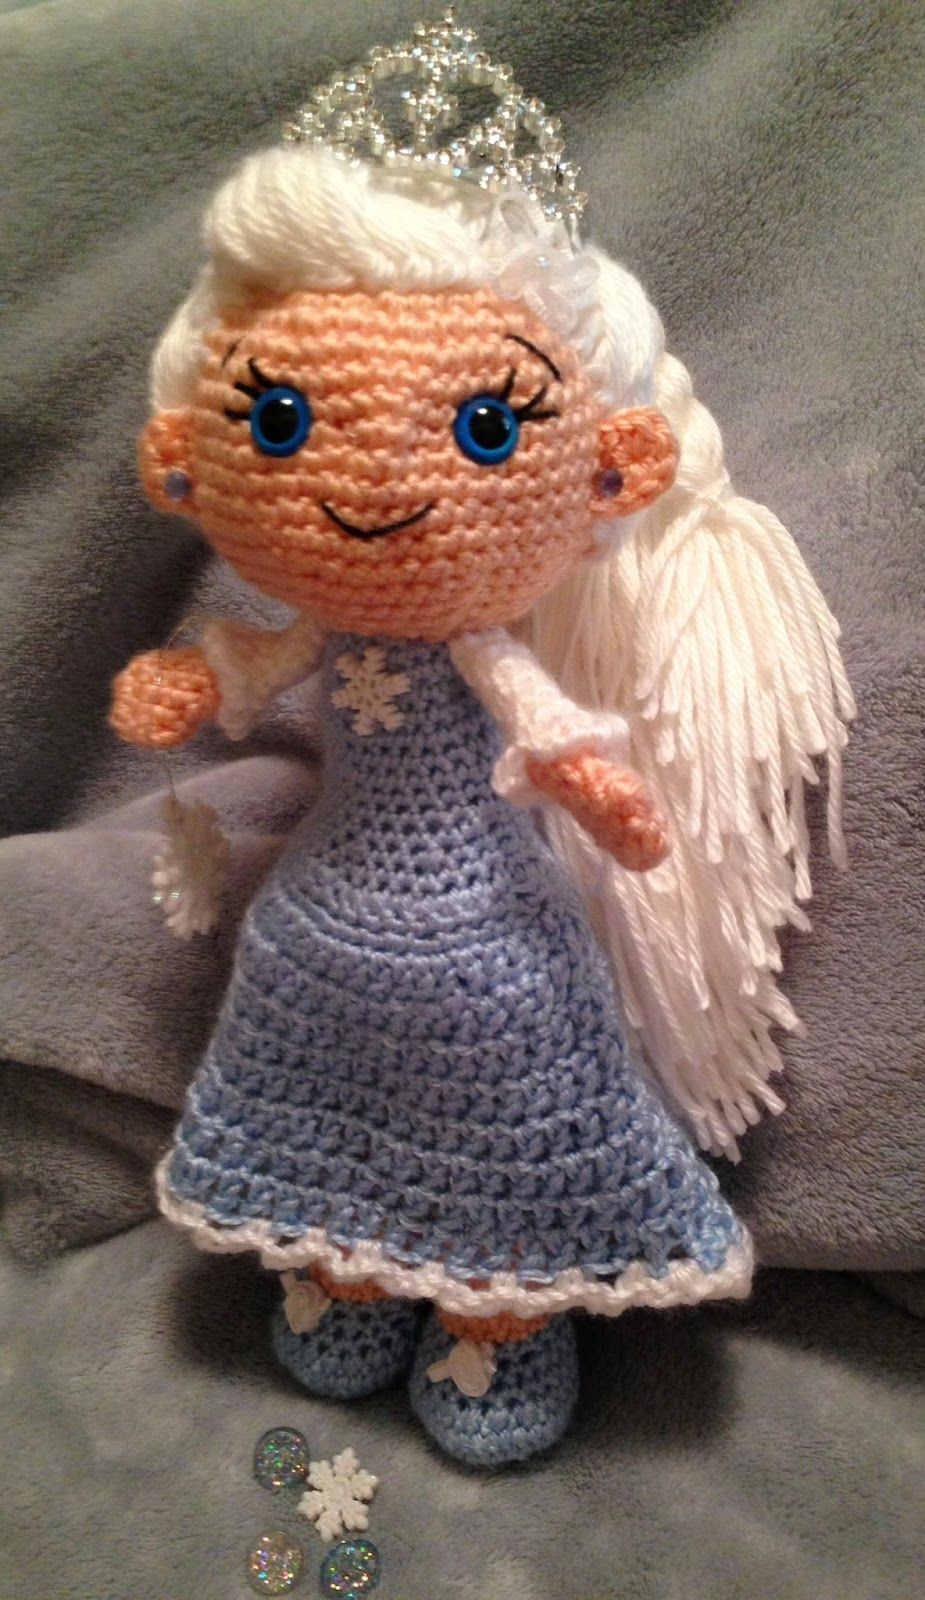 Free Crochet Pattern For An Ice Princess Amigurumi Doll By Pj Crafts